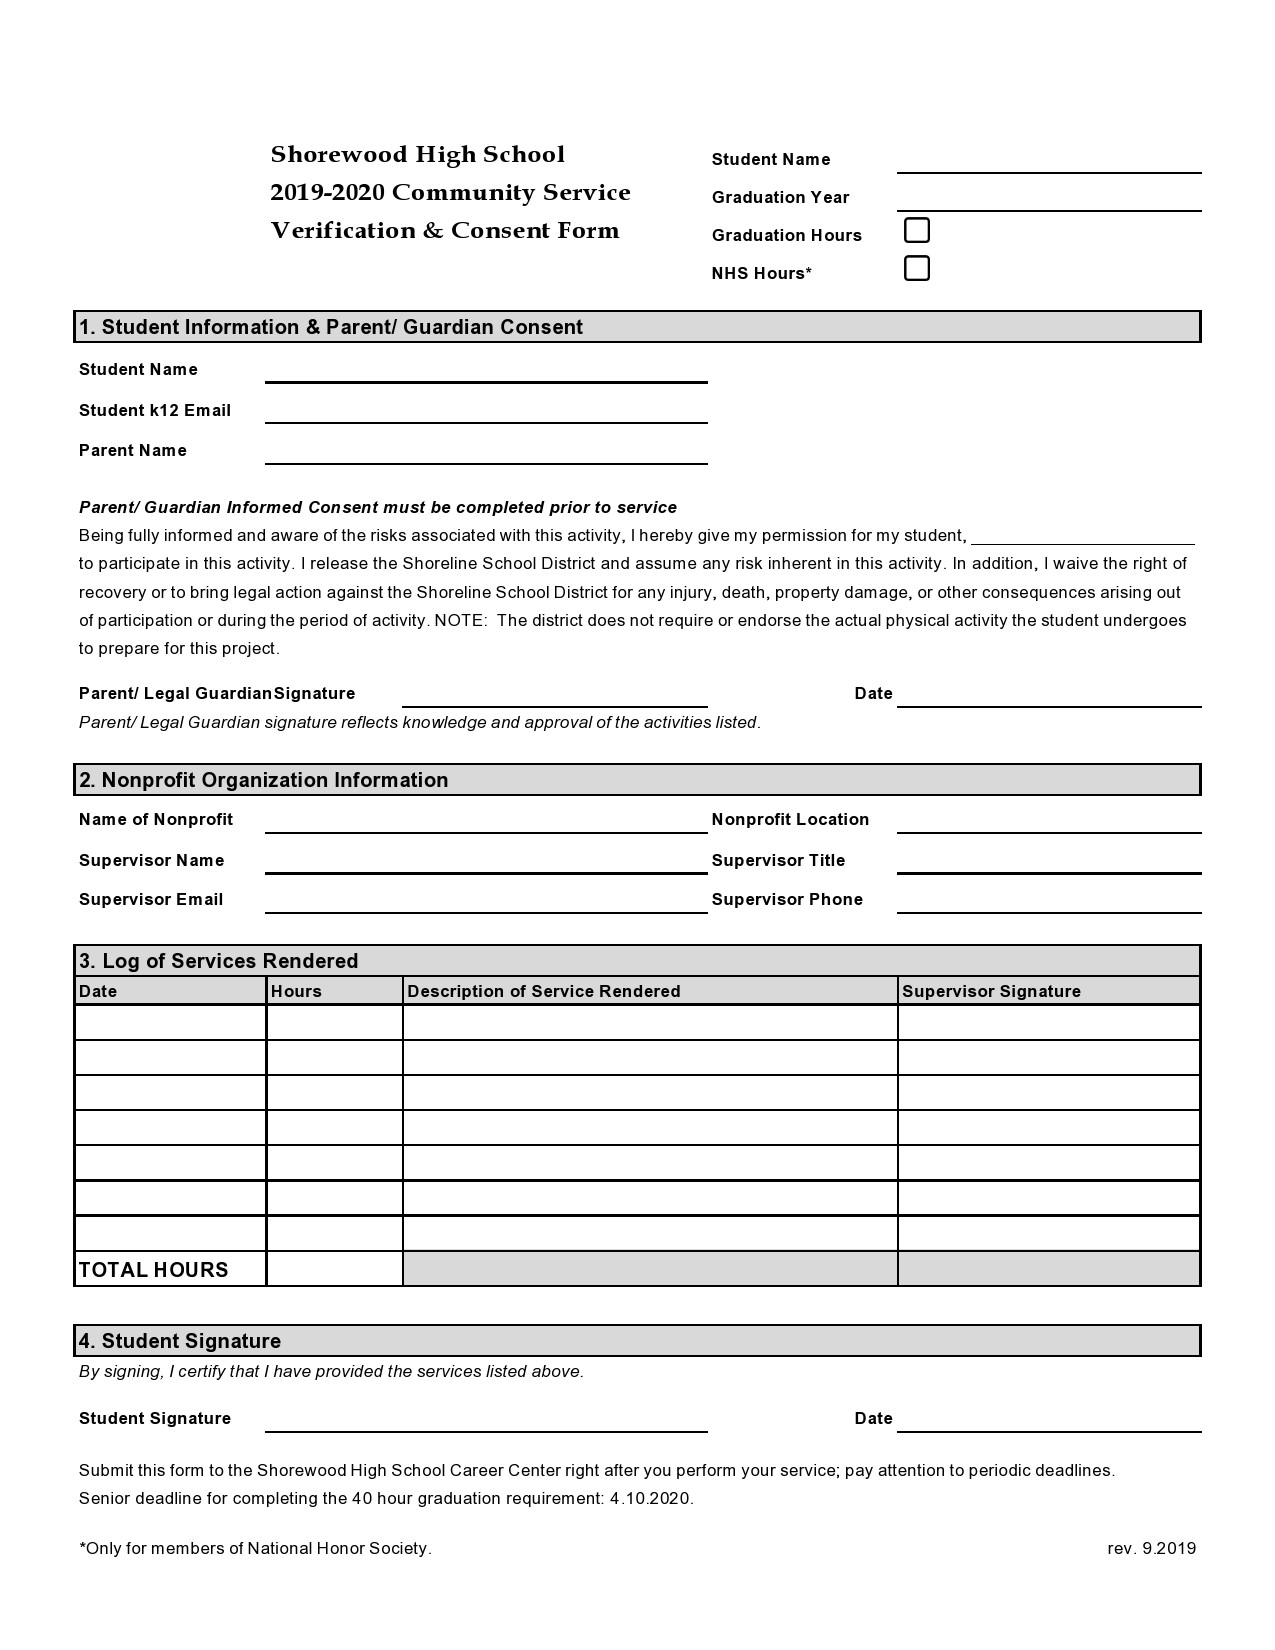 Free community service form 28